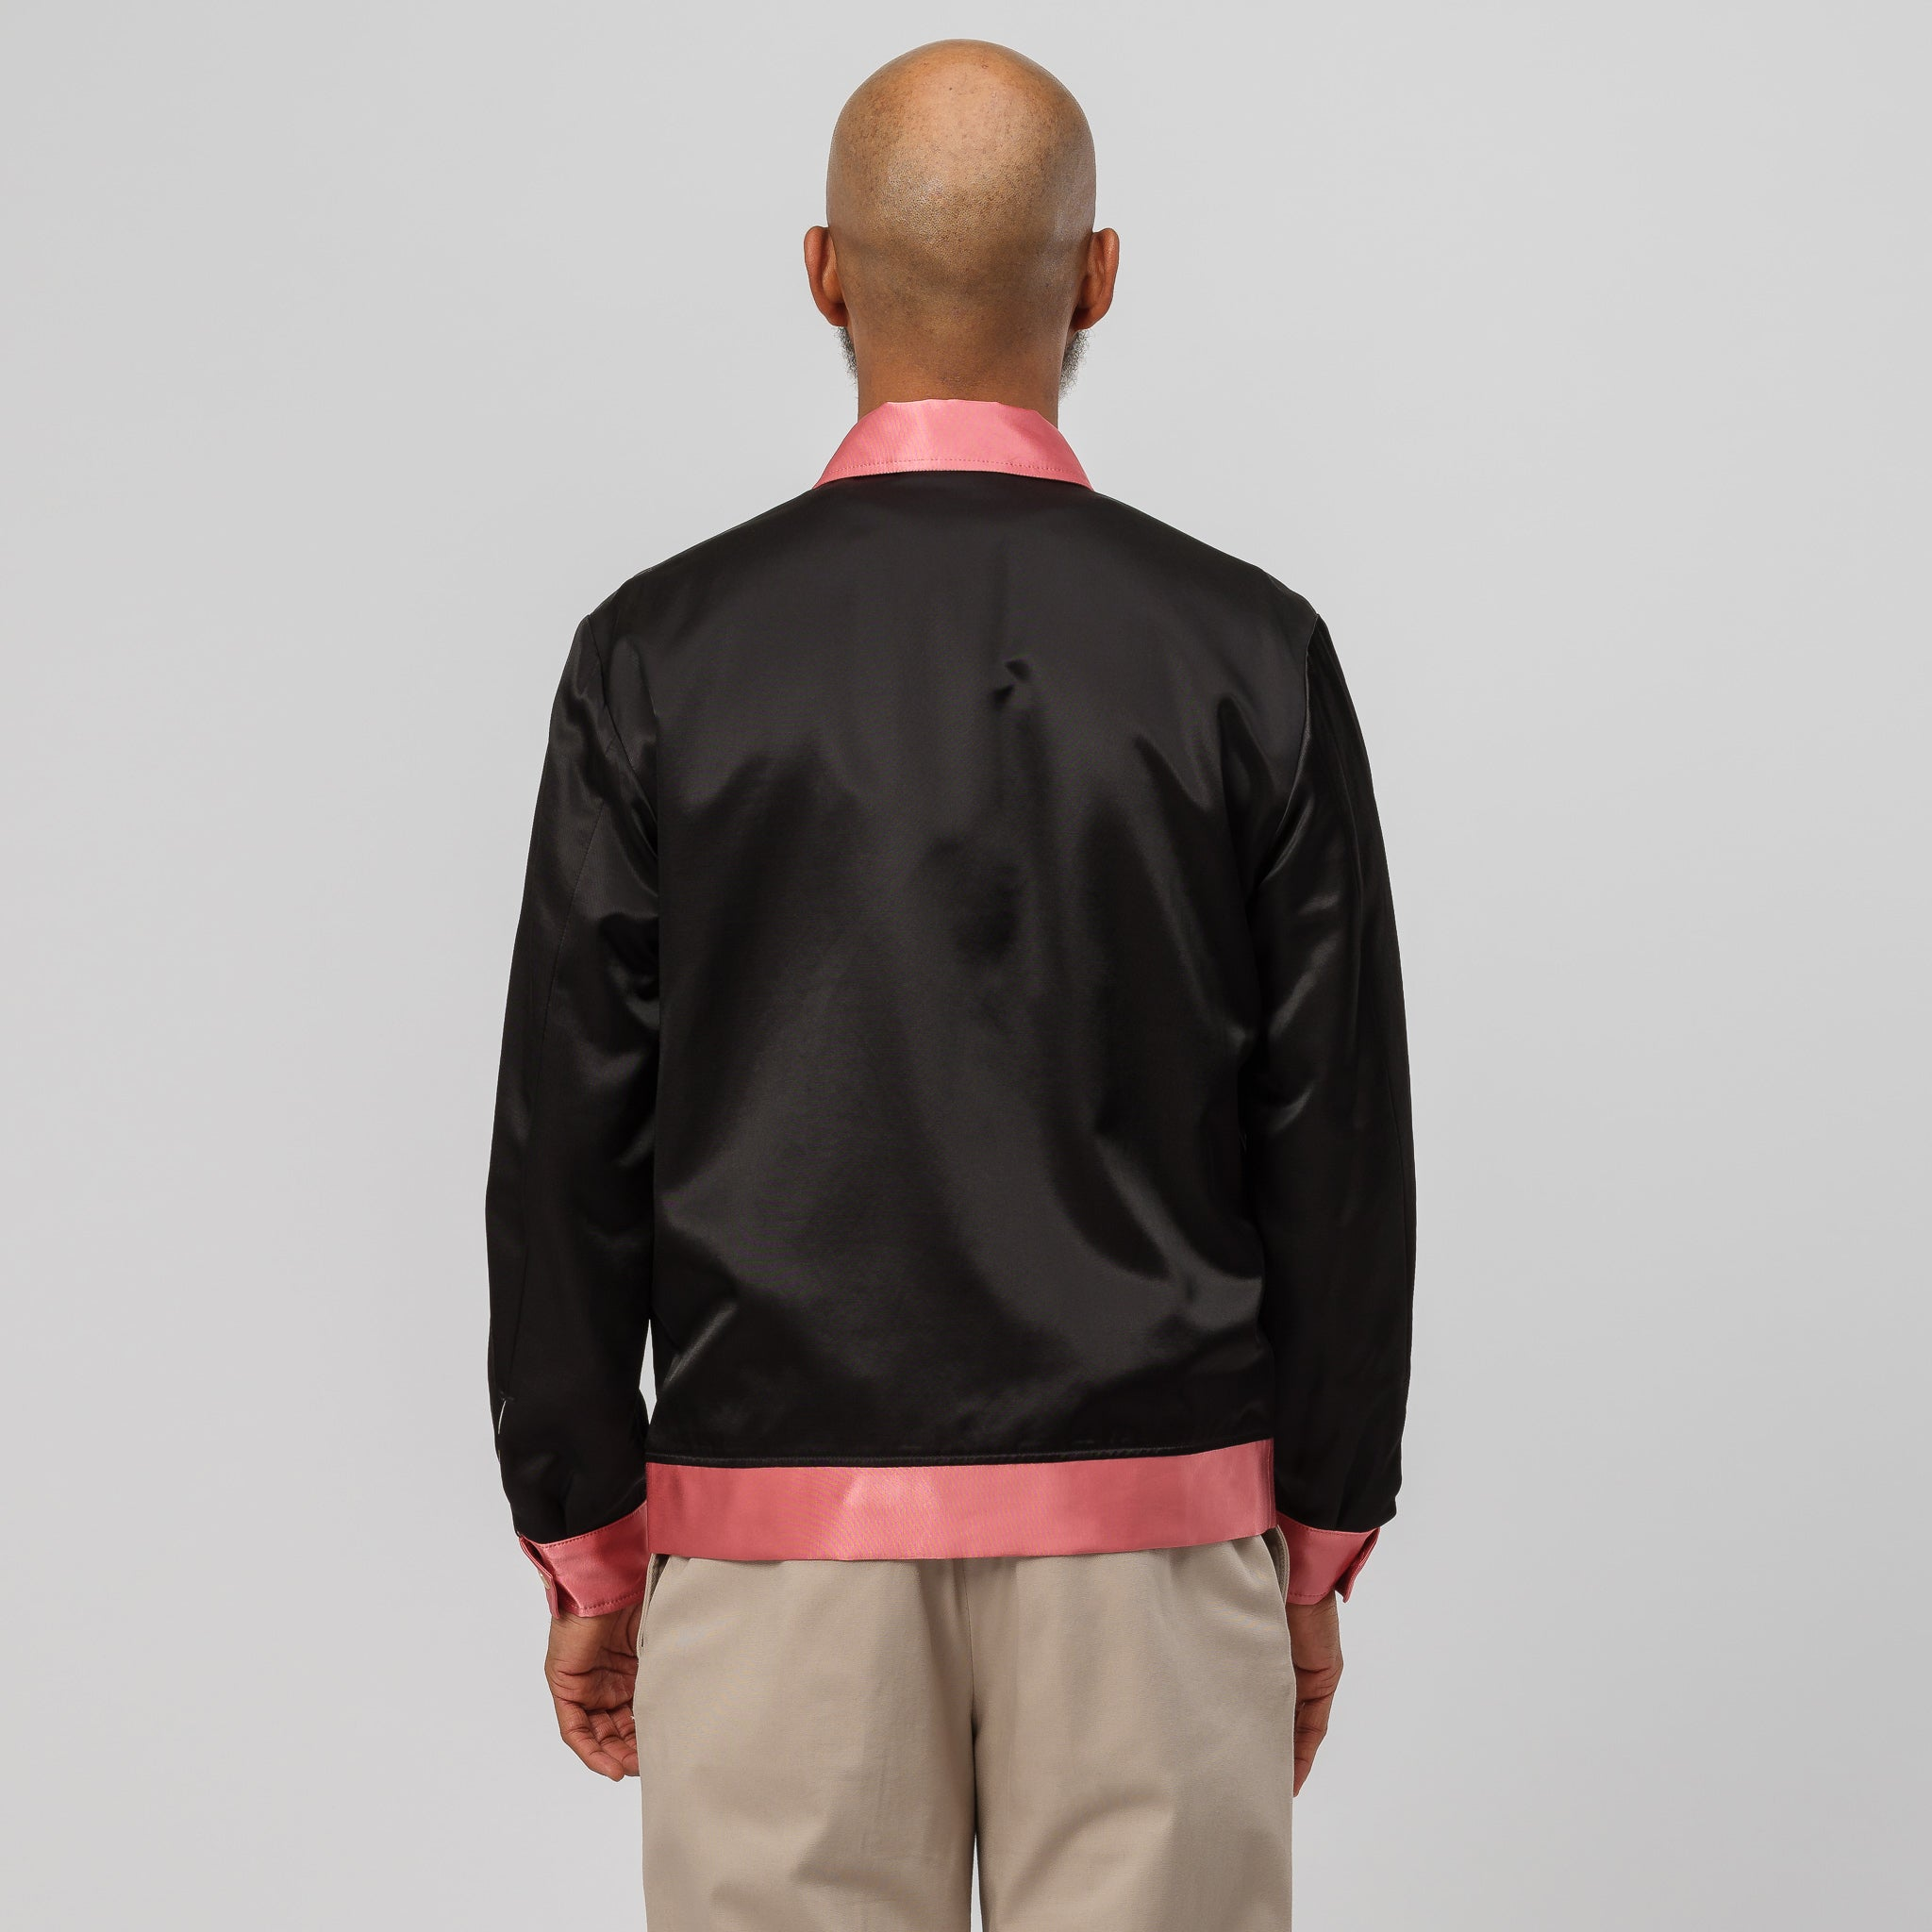 Two-Tone 50's Jacket in Black